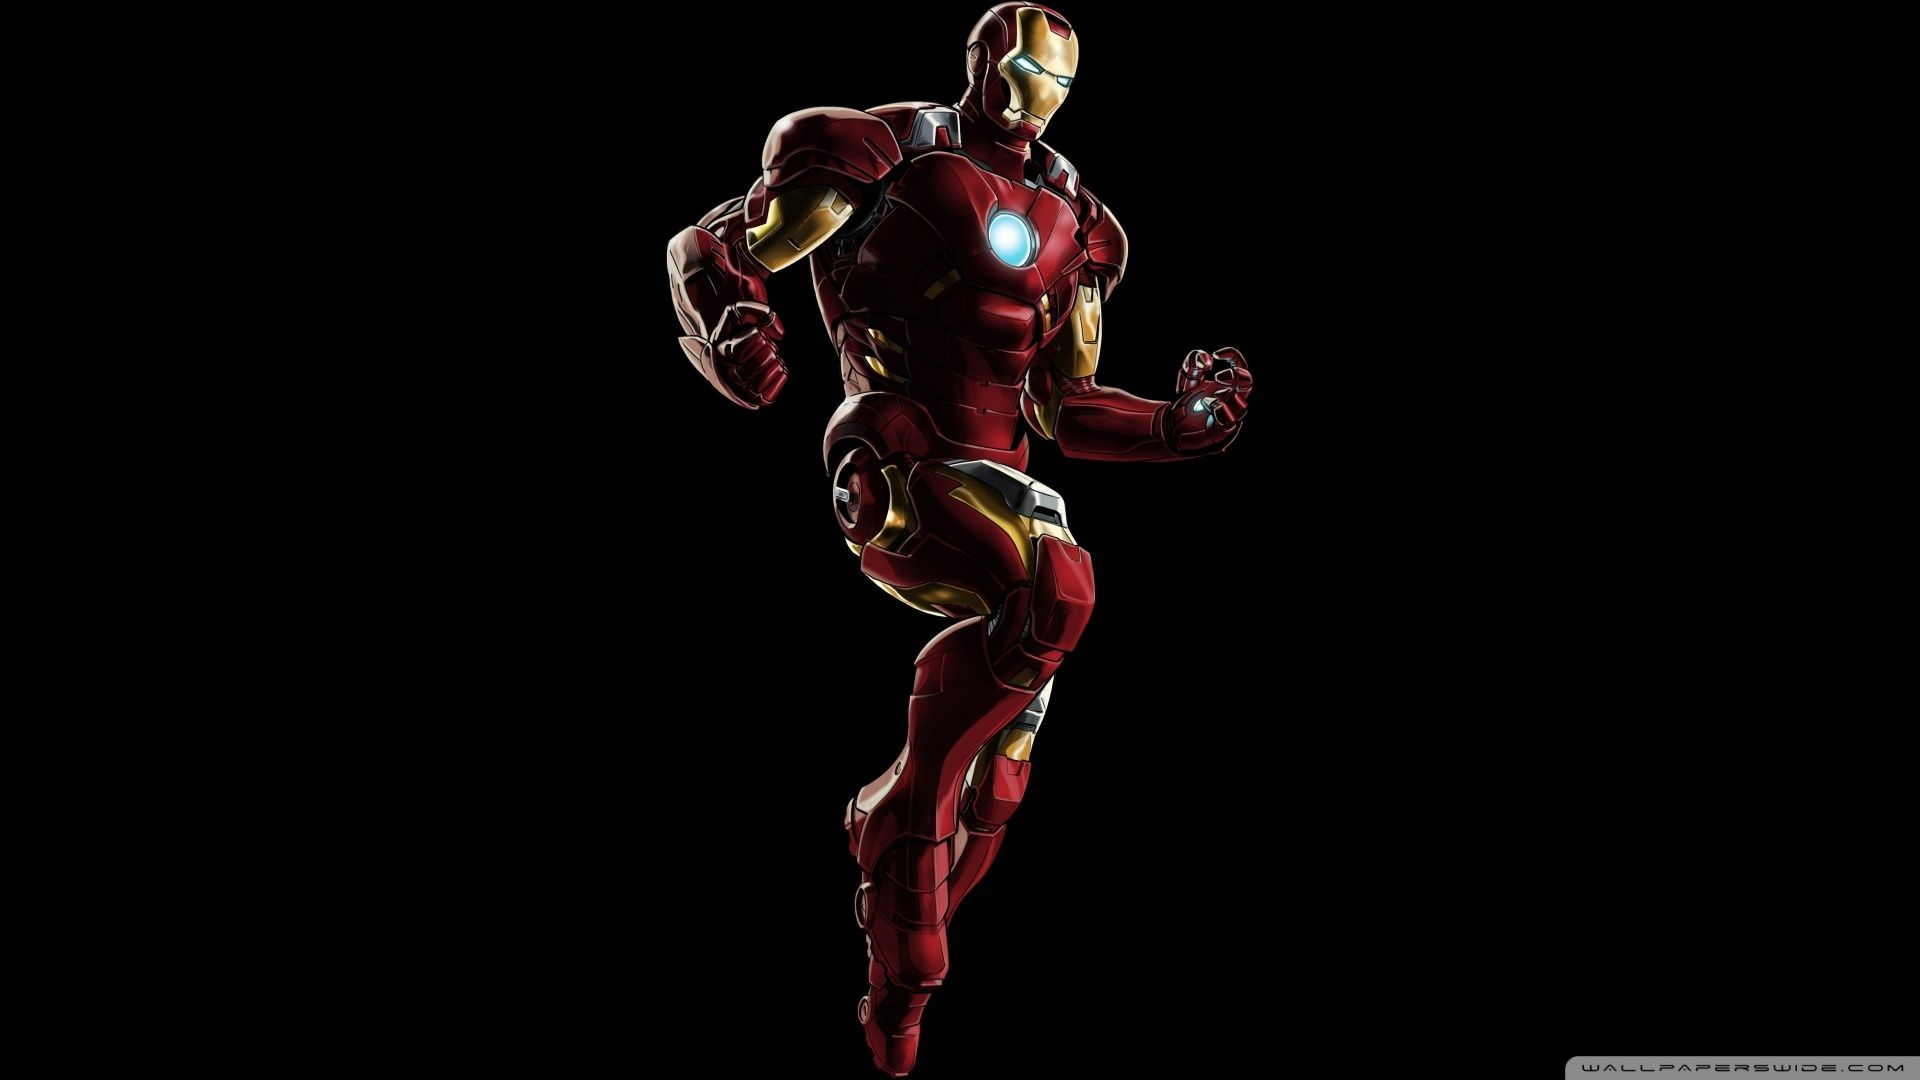 Jarvis iron man android wallpaper photo joannie rochette jewelry